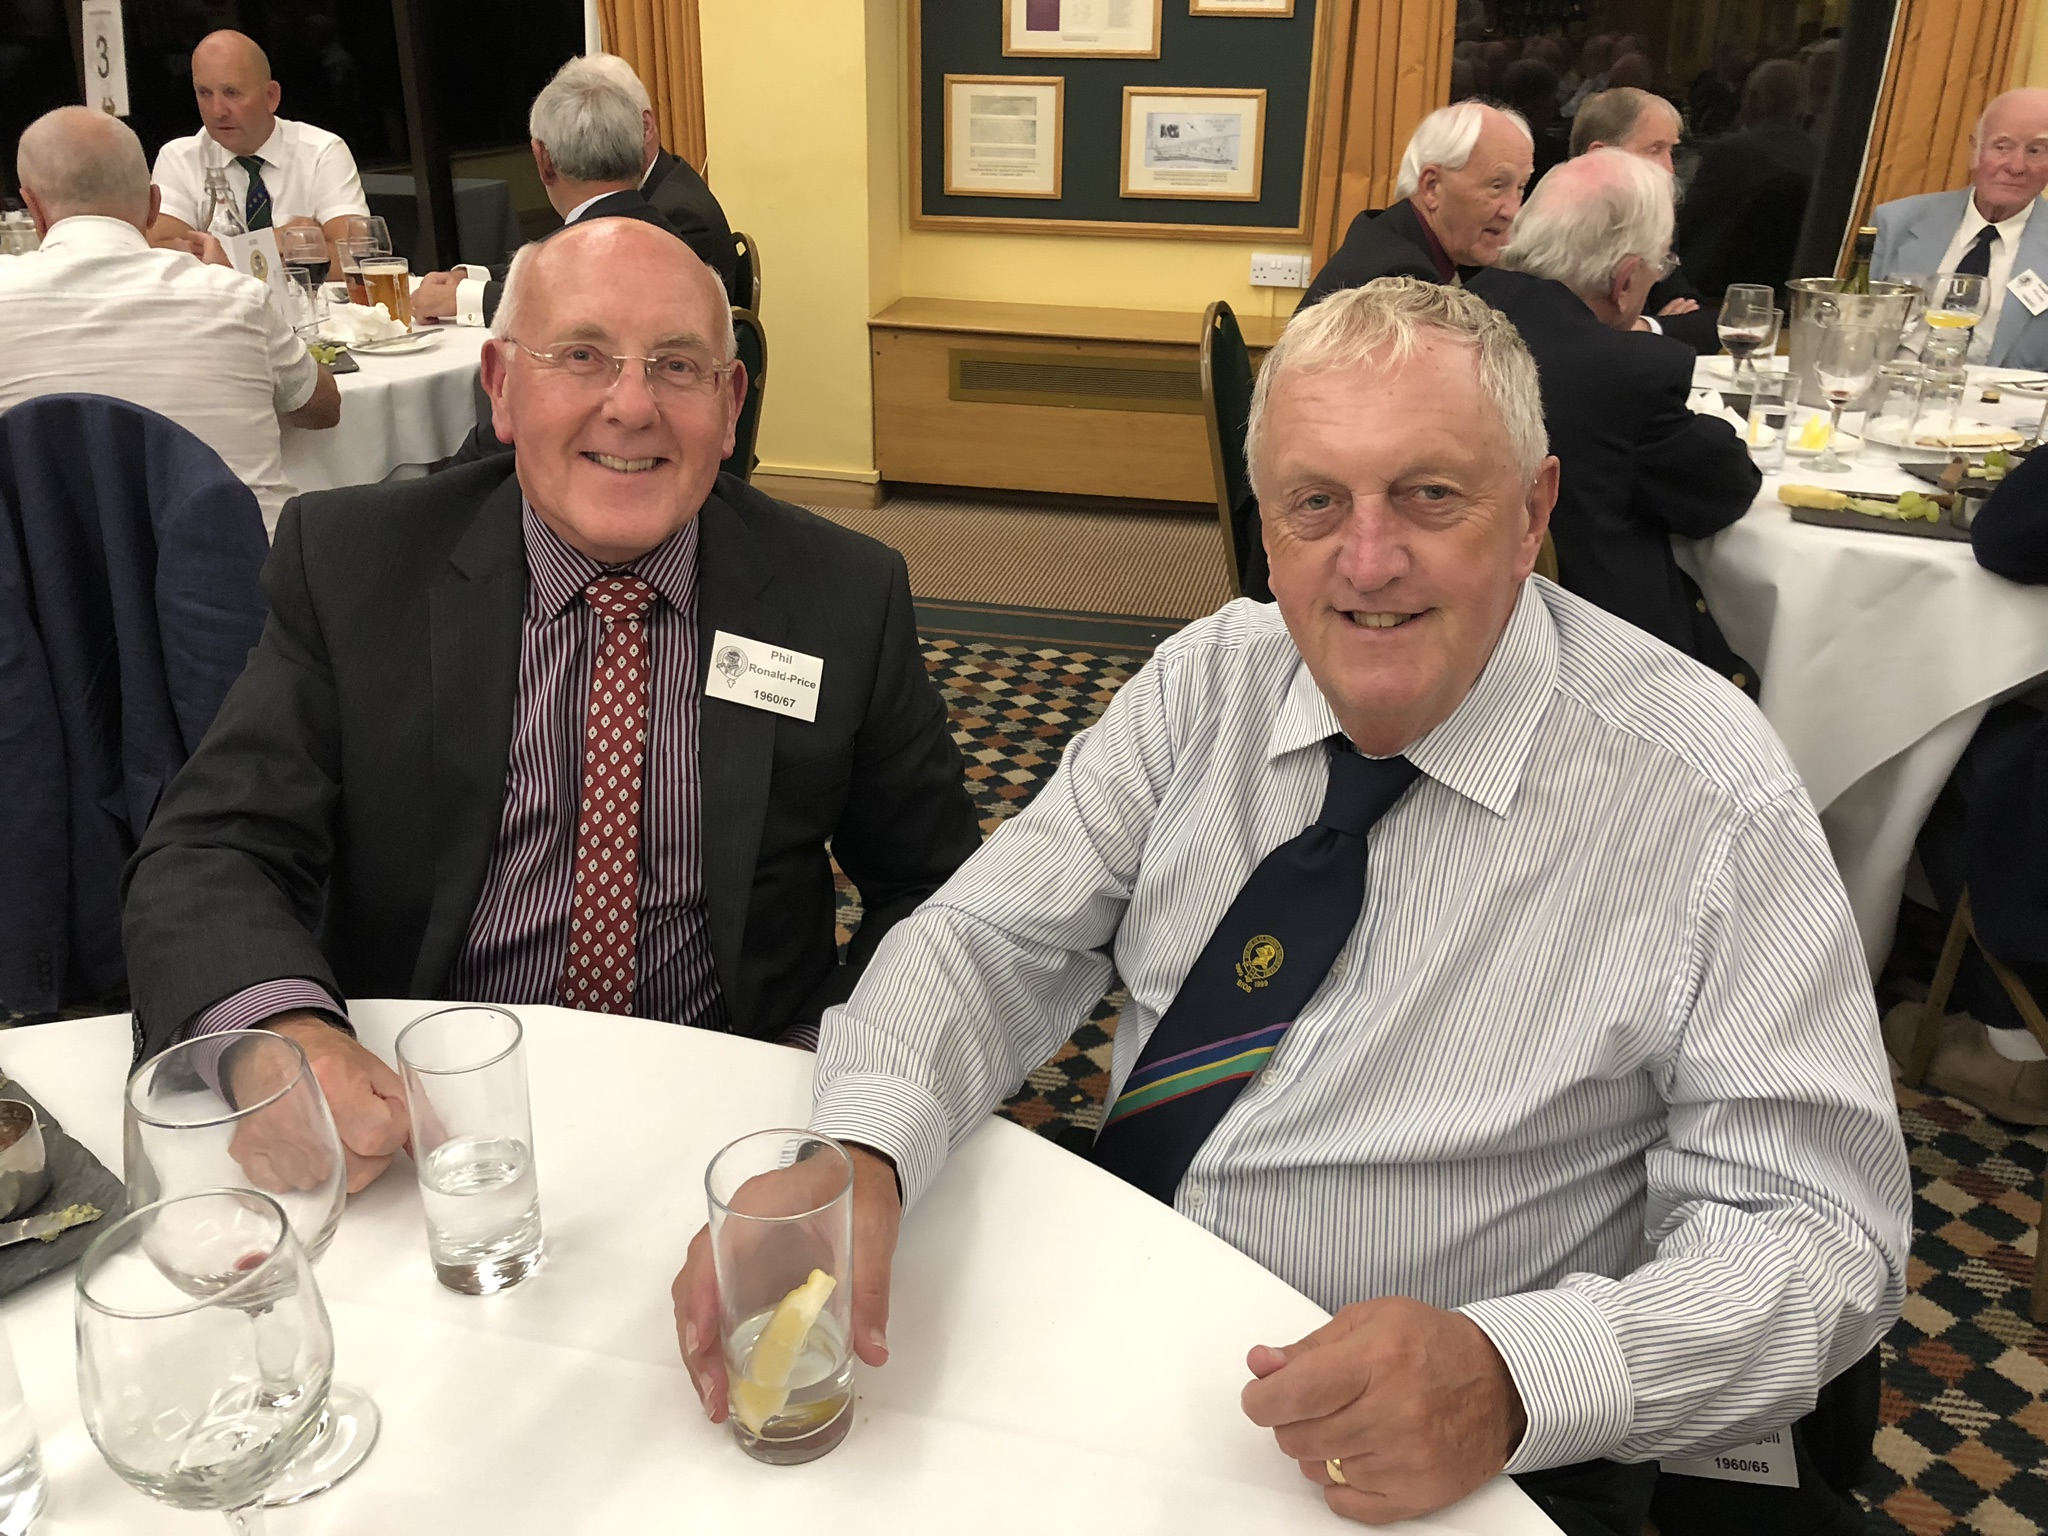 Photograph of Philip Ronald-Price (1960/67) at Reunion Dinner 2019